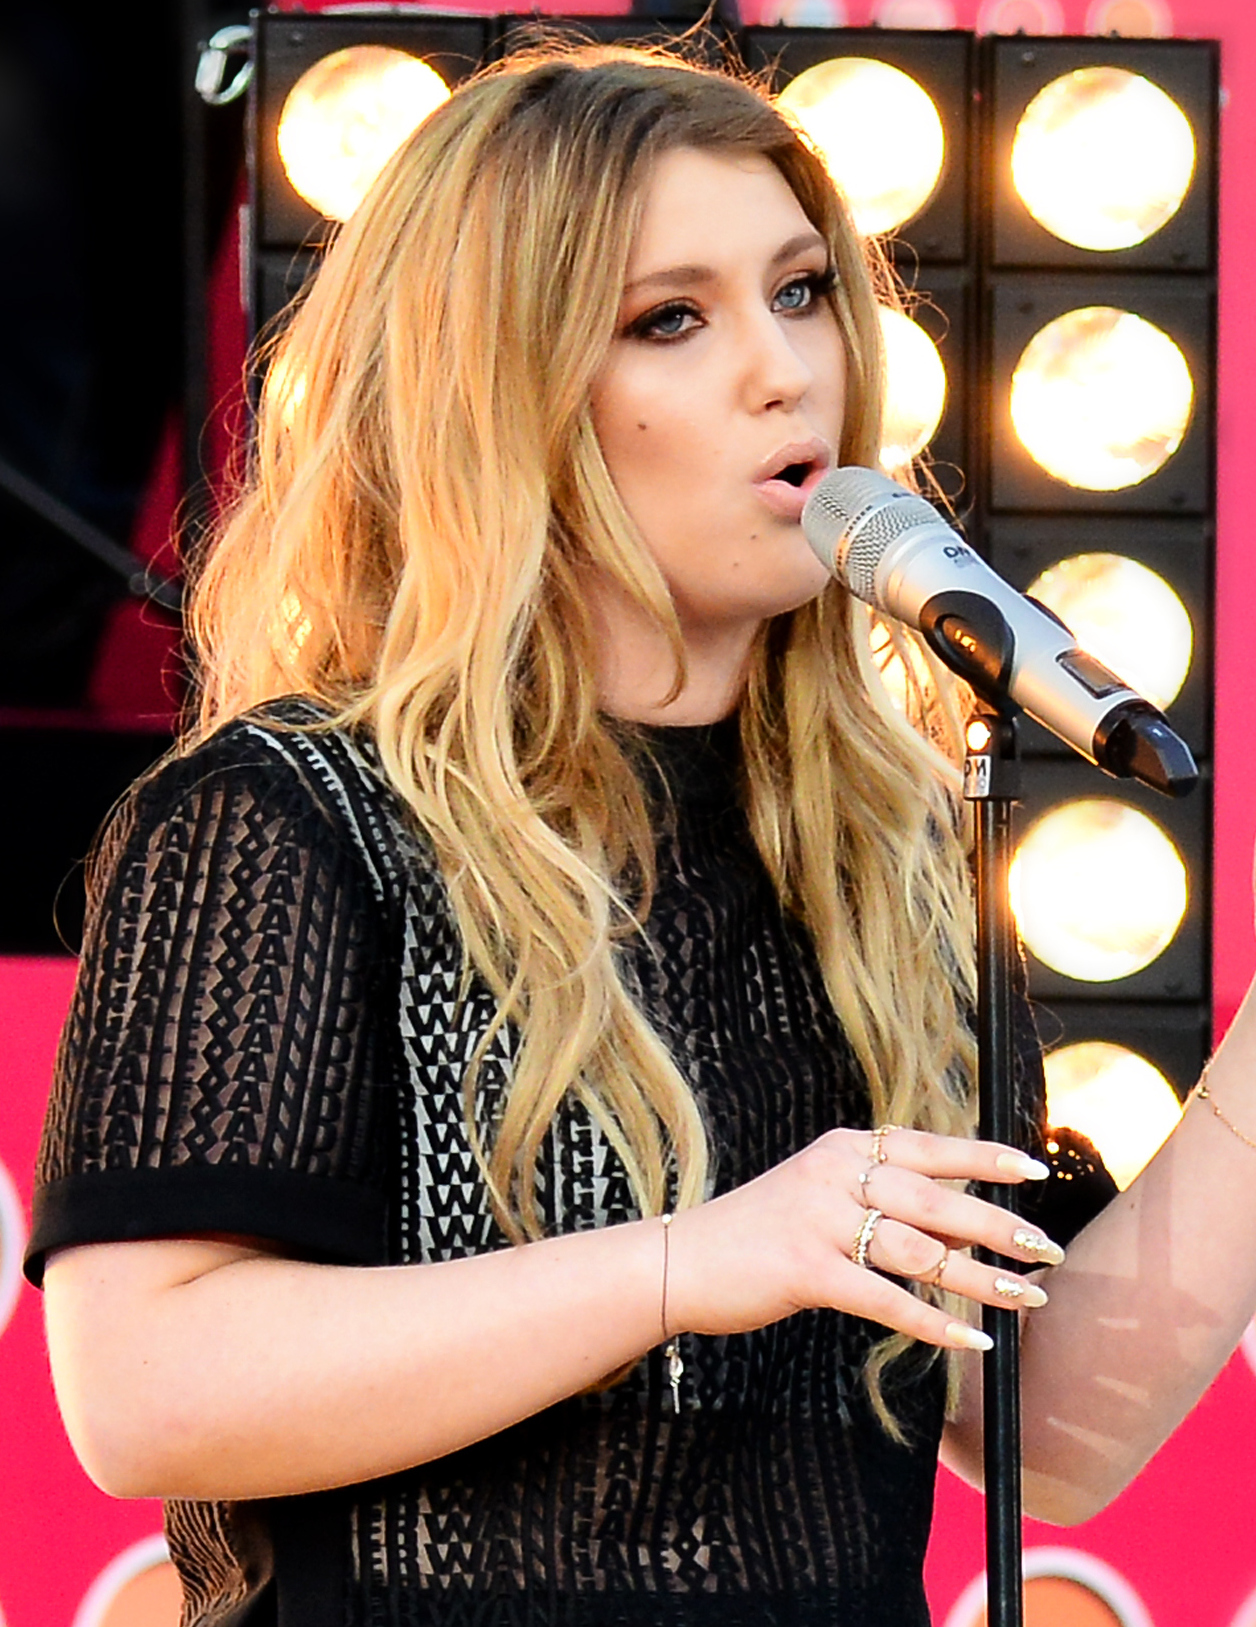 The 22-year old daughter of father Sean and mother Michelle Ella Henderson in 2018 photo. Ella Henderson earned a  million dollar salary - leaving the net worth at 3 million in 2018